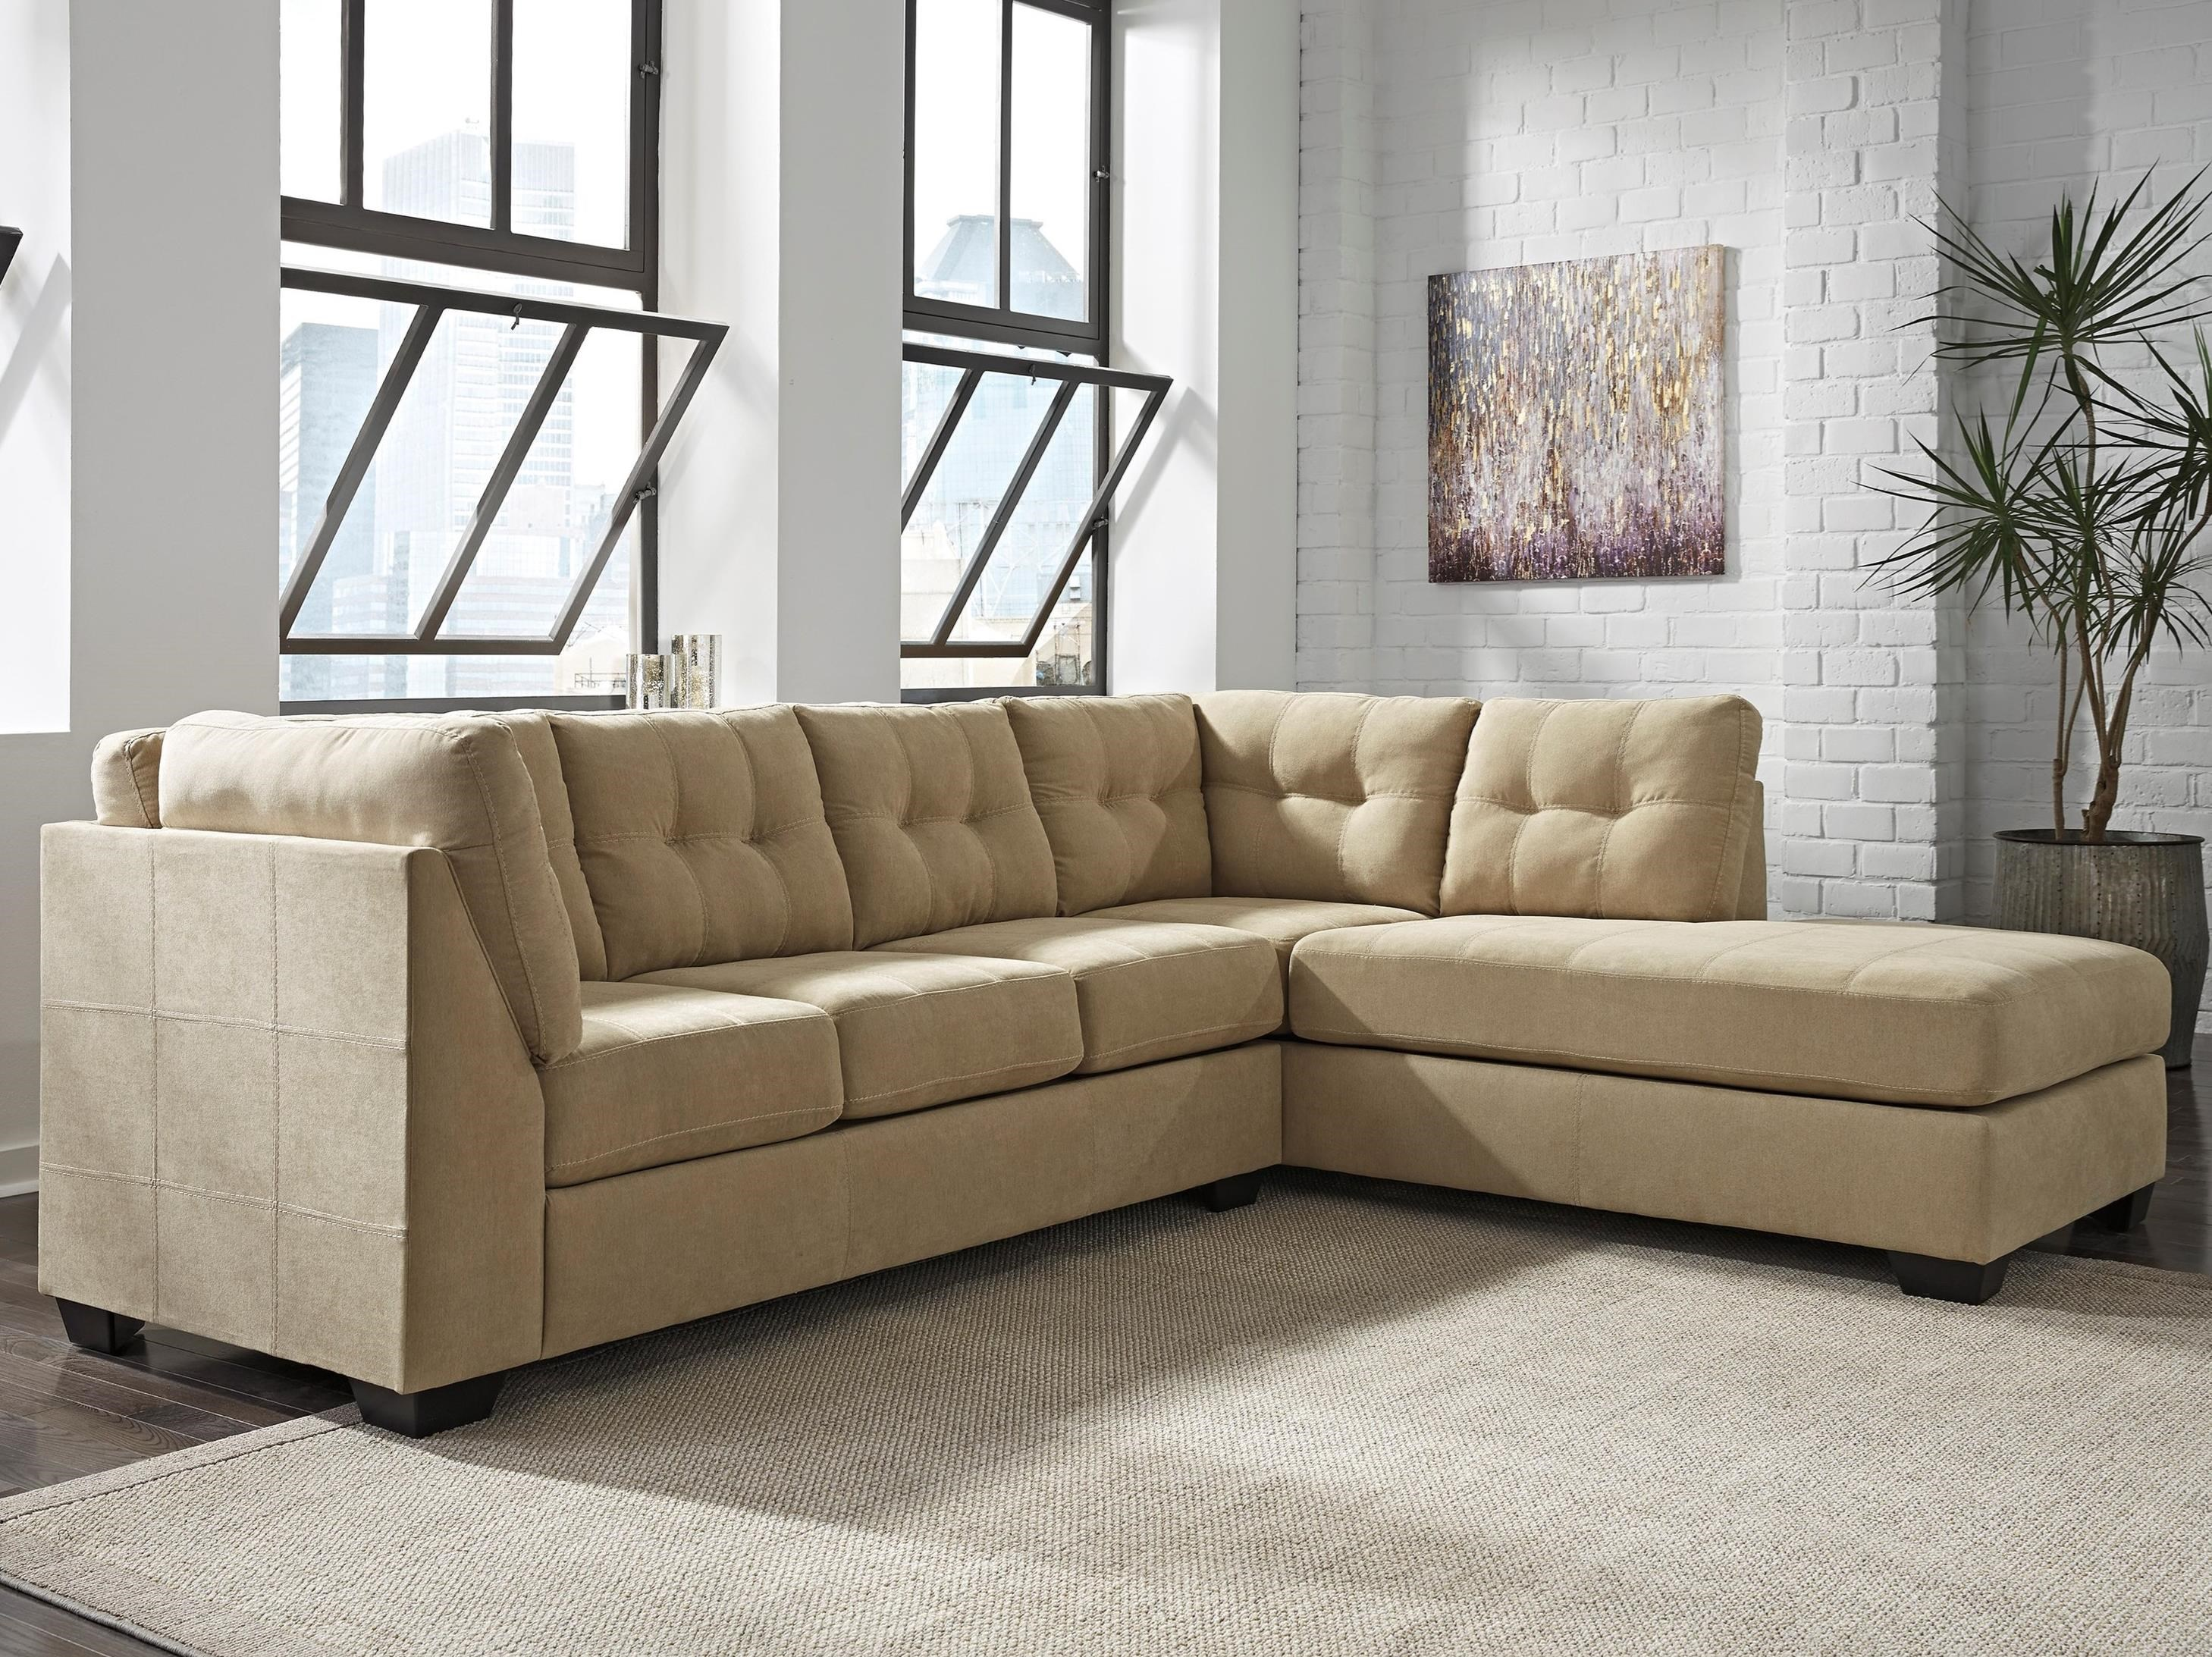 Benchcraft Maier Cocoa 2 Piece Sectional With Right Chaise  ~ Sofa Sectional With Chaise